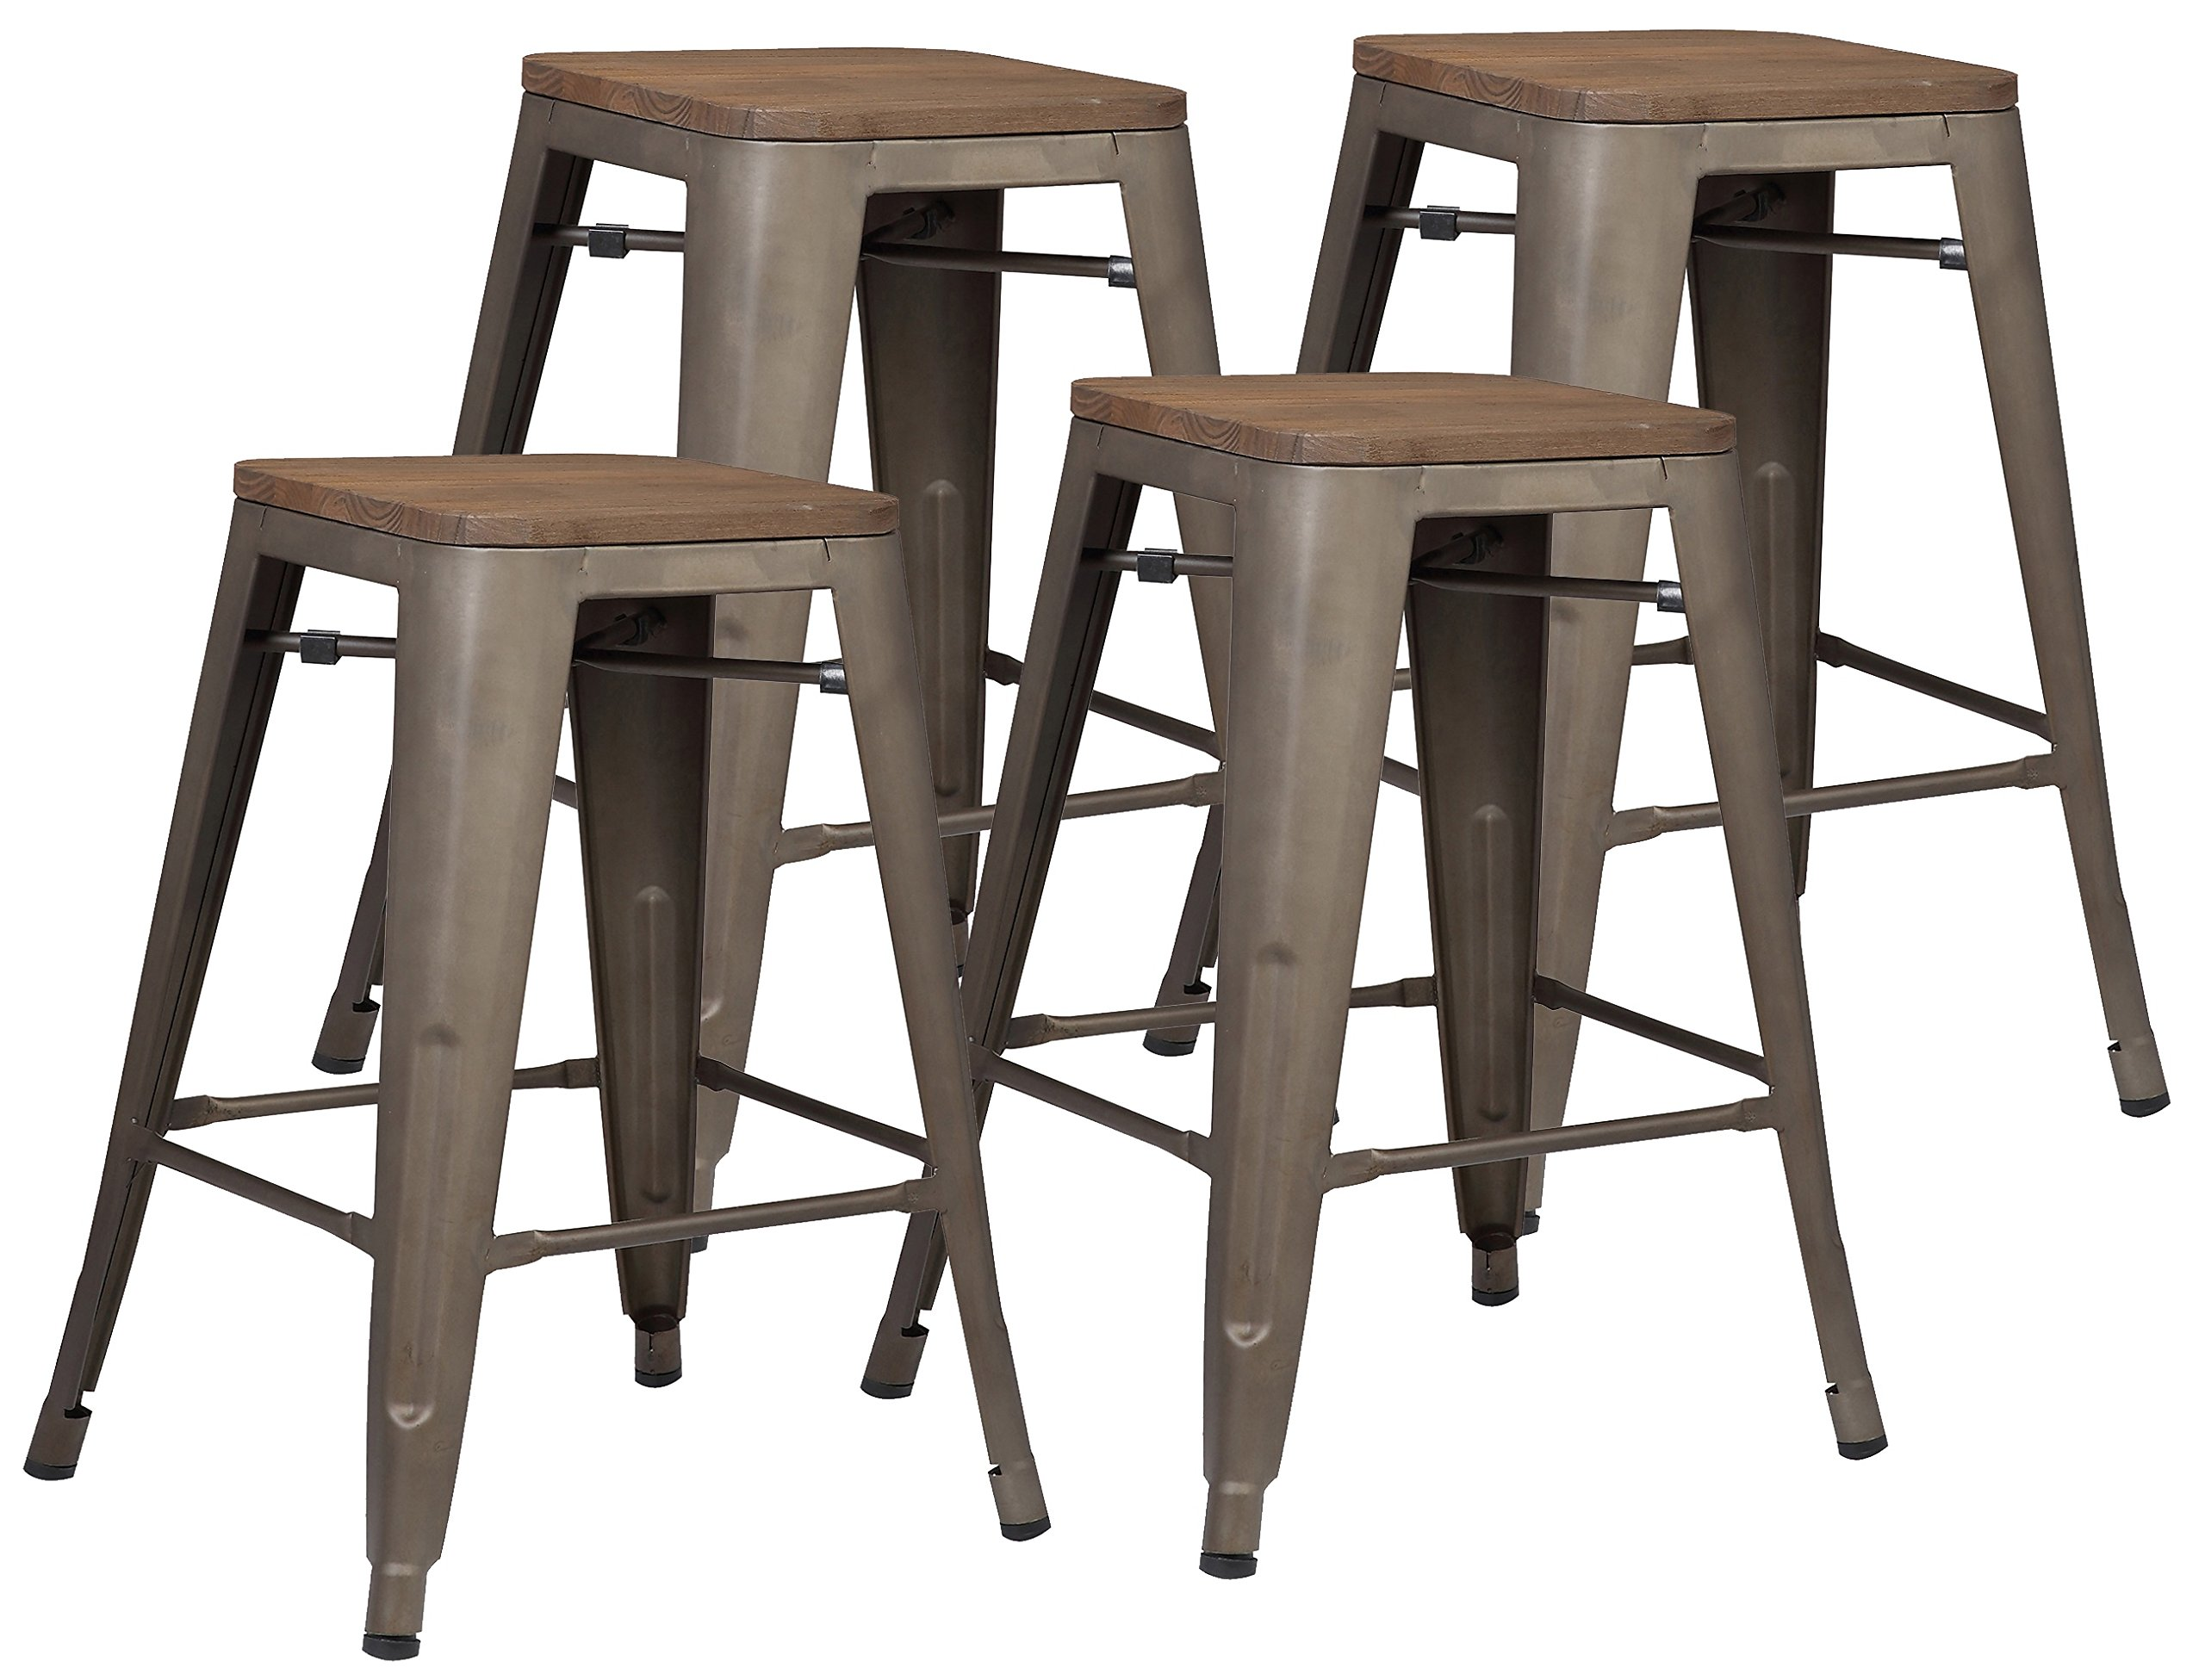 Poly and Bark Trattoria 24'' Counter Height Stool with Elmwood Seat in Bronze (Set of 4) by Poly and Bark